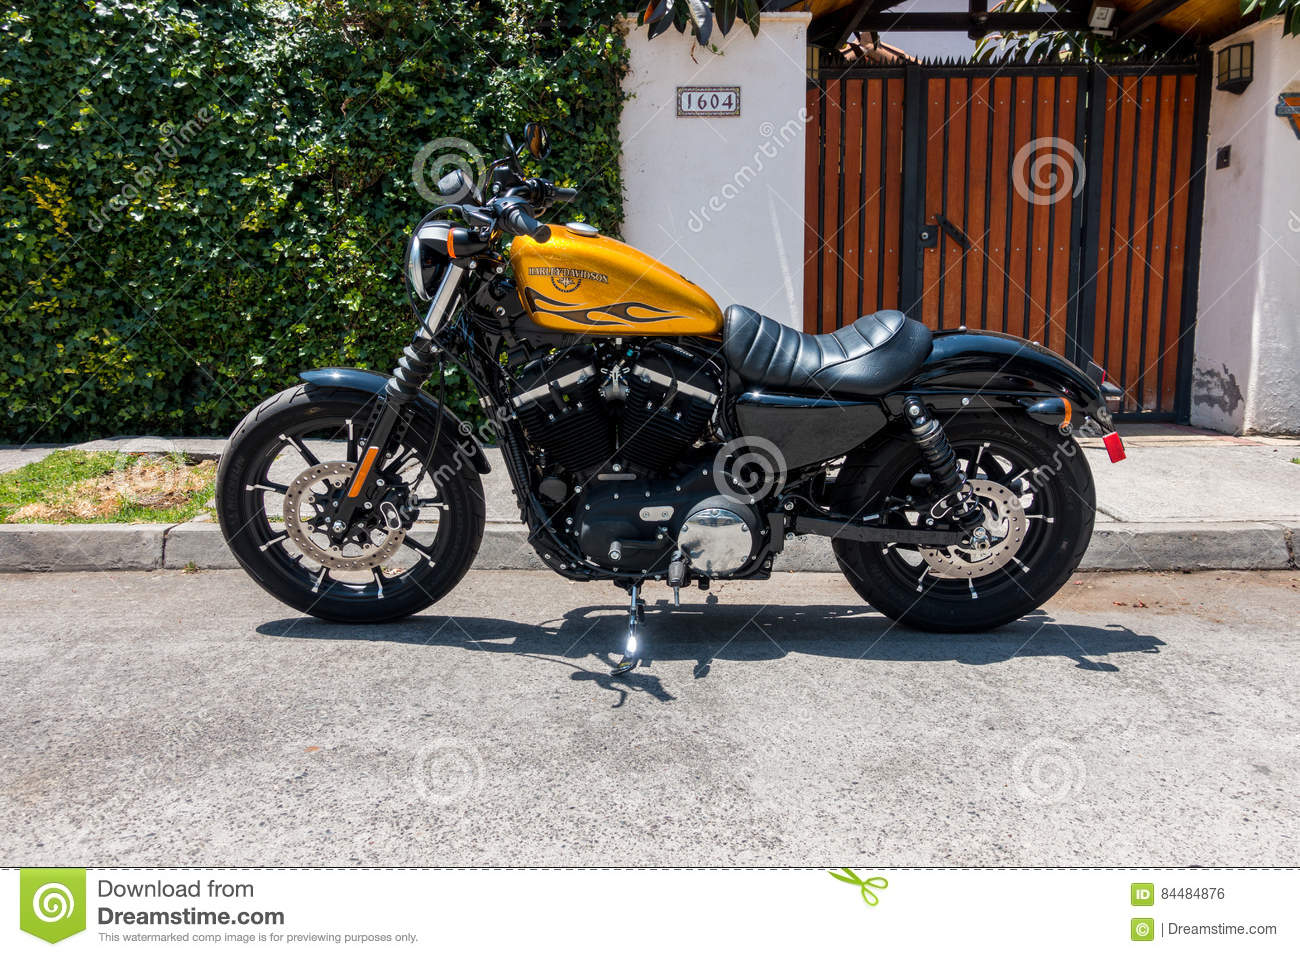 Harley Davidson Iron 883 Editorial Stock Photo